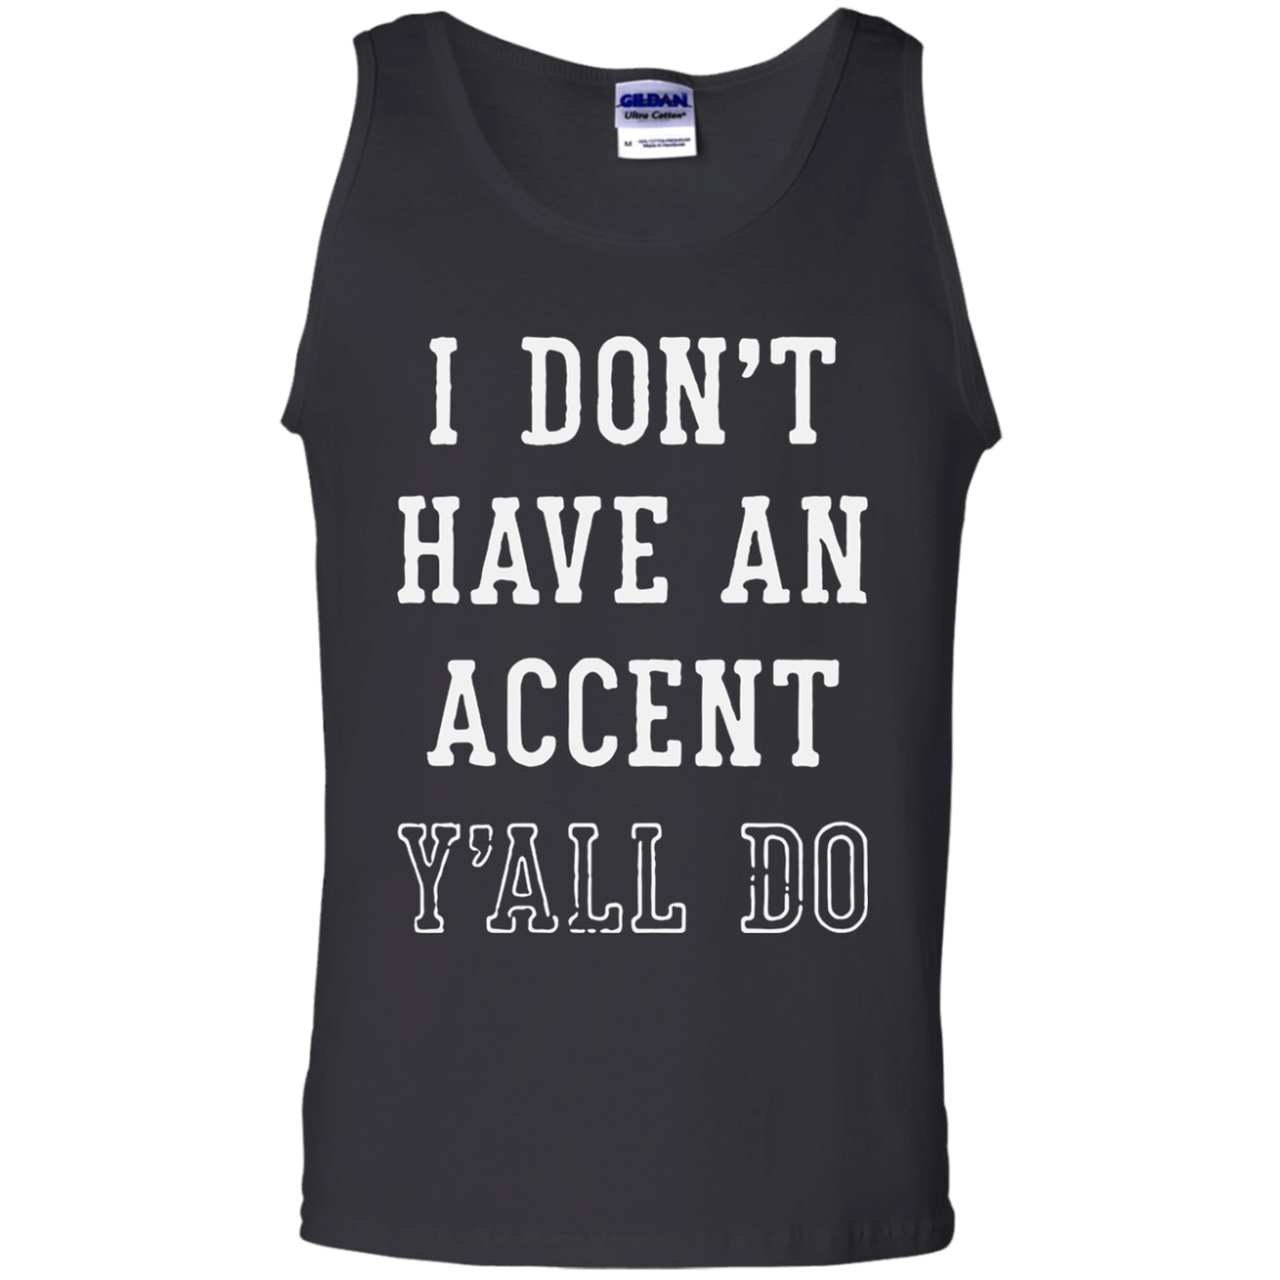 Don T Have An Accent Y All Do G220 100 32218587 Shirts